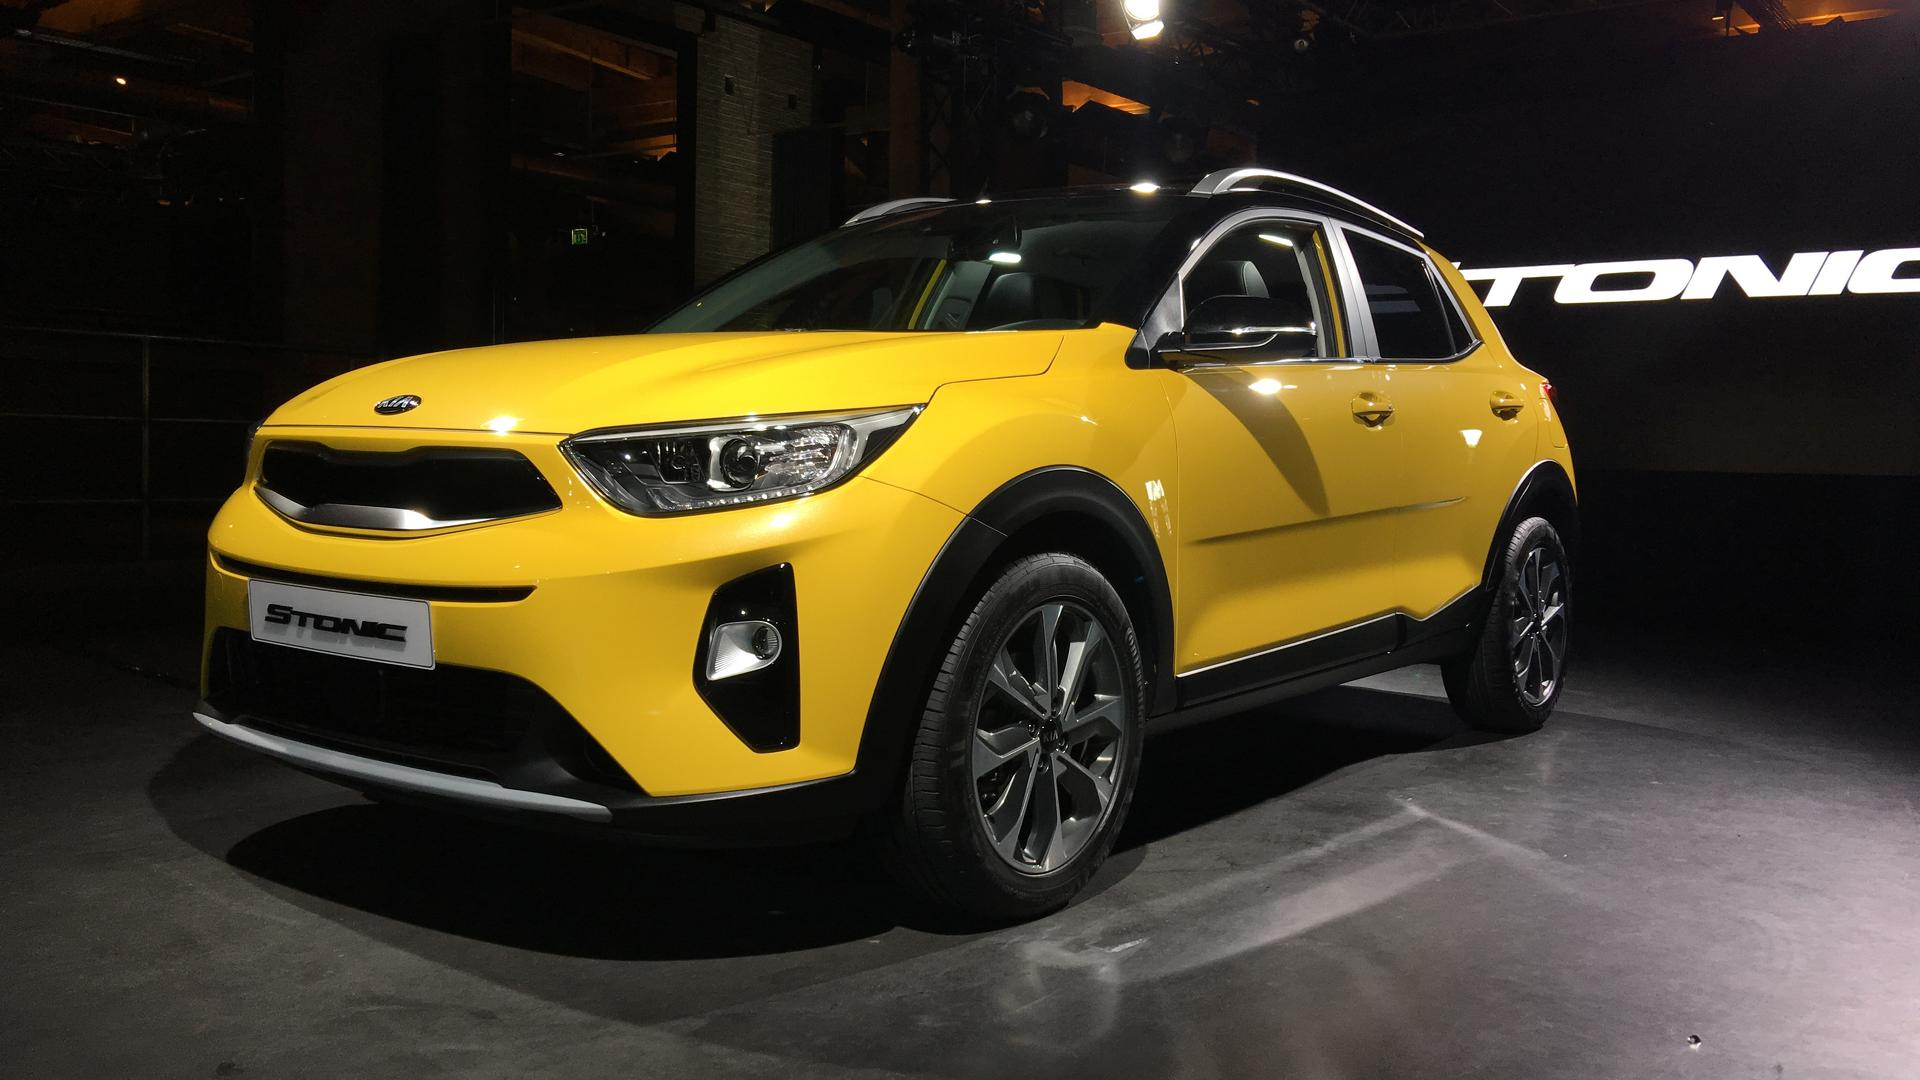 2018 kia stonic subcompact crossover debuts in the metal for Kia motor company usa